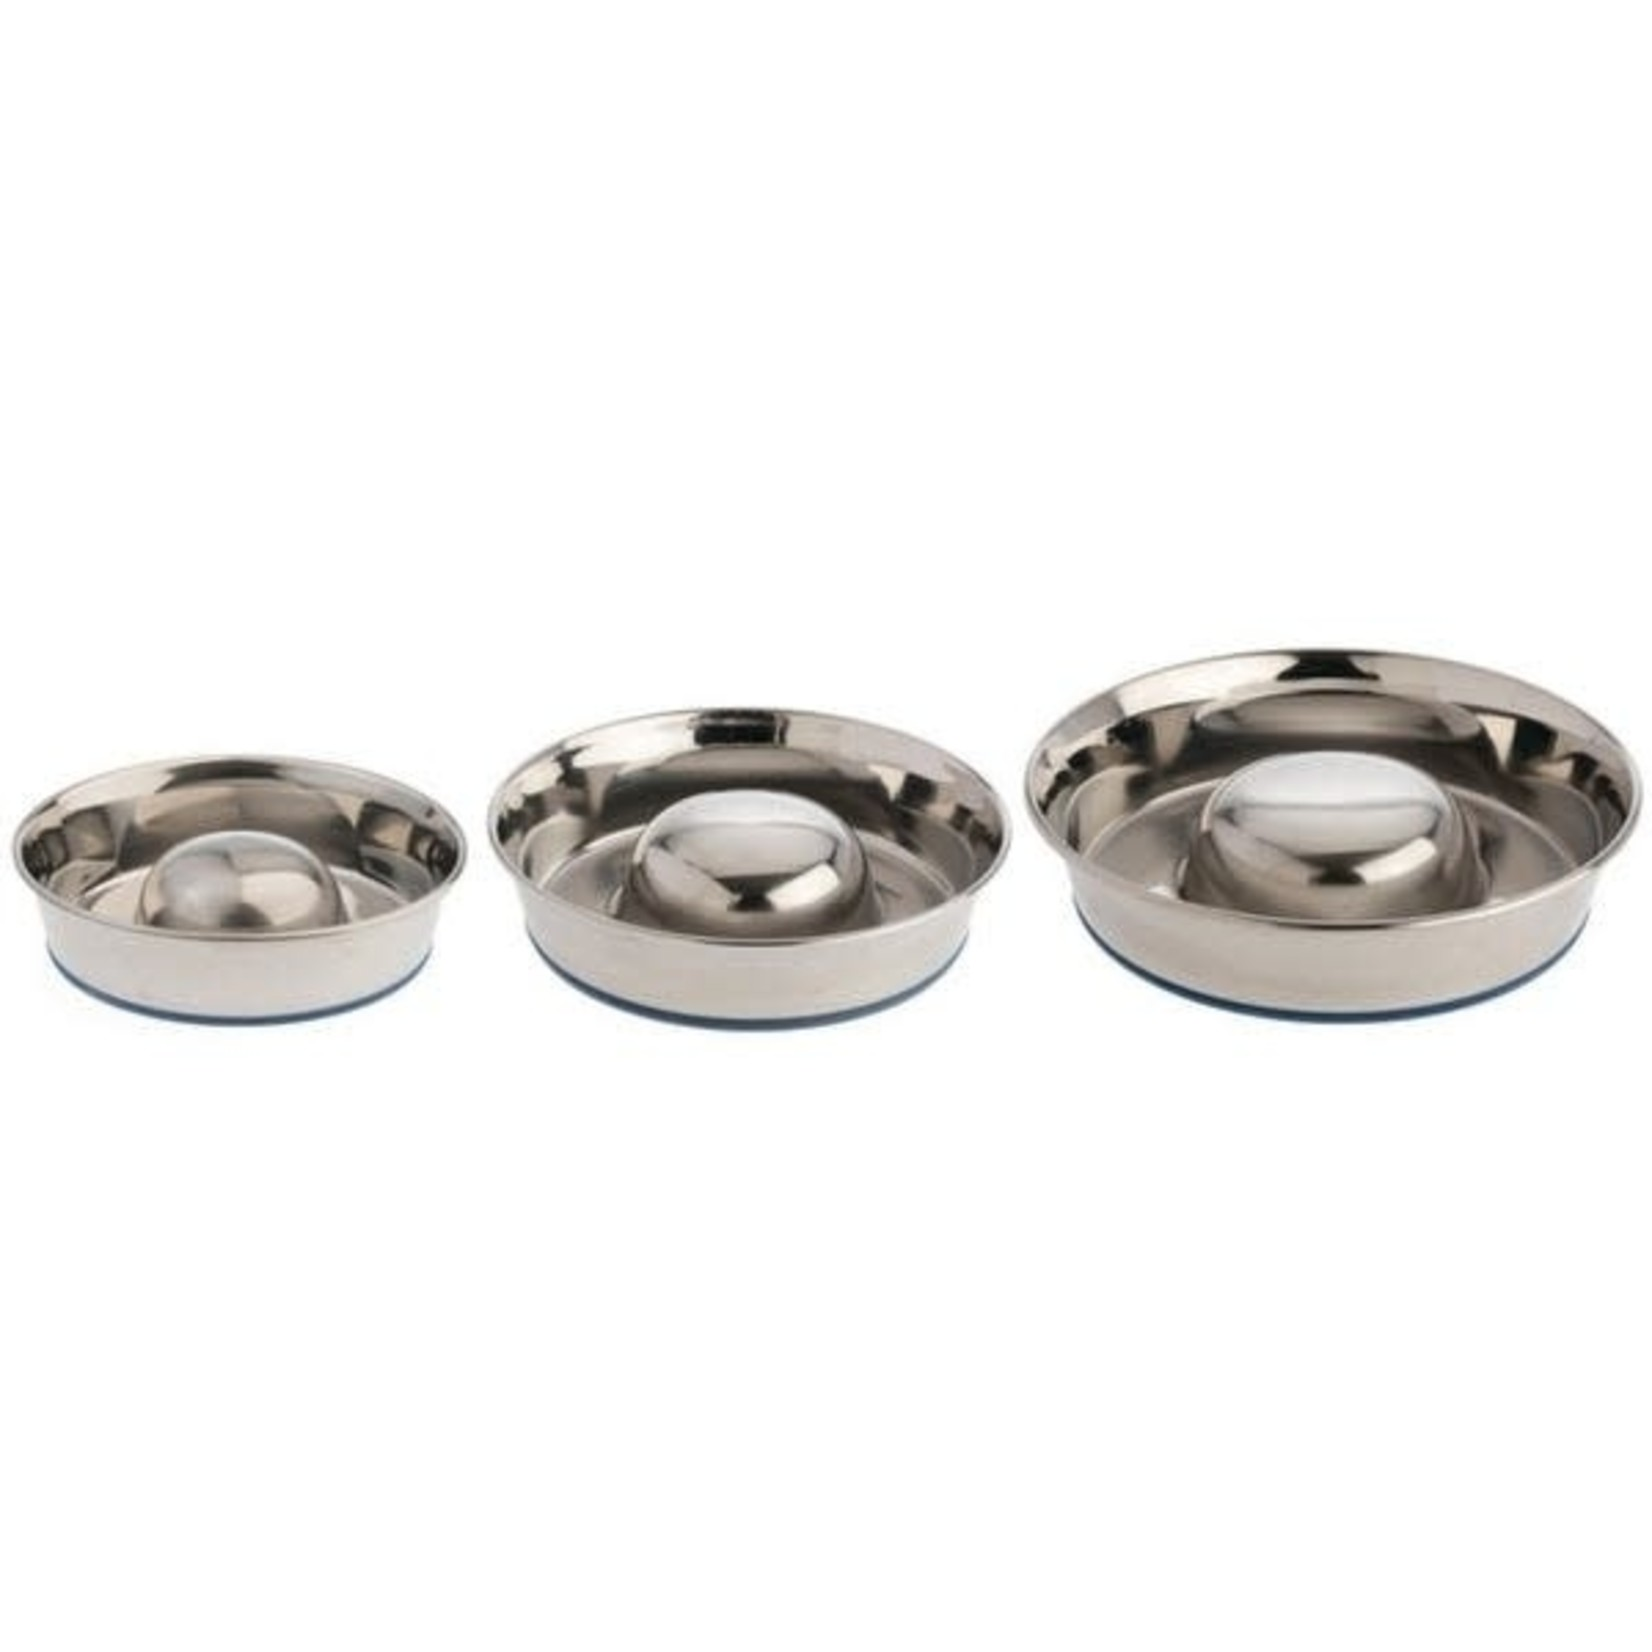 Our Pets Company Durapet Stainless Steel Bowl Slow Feed Medium